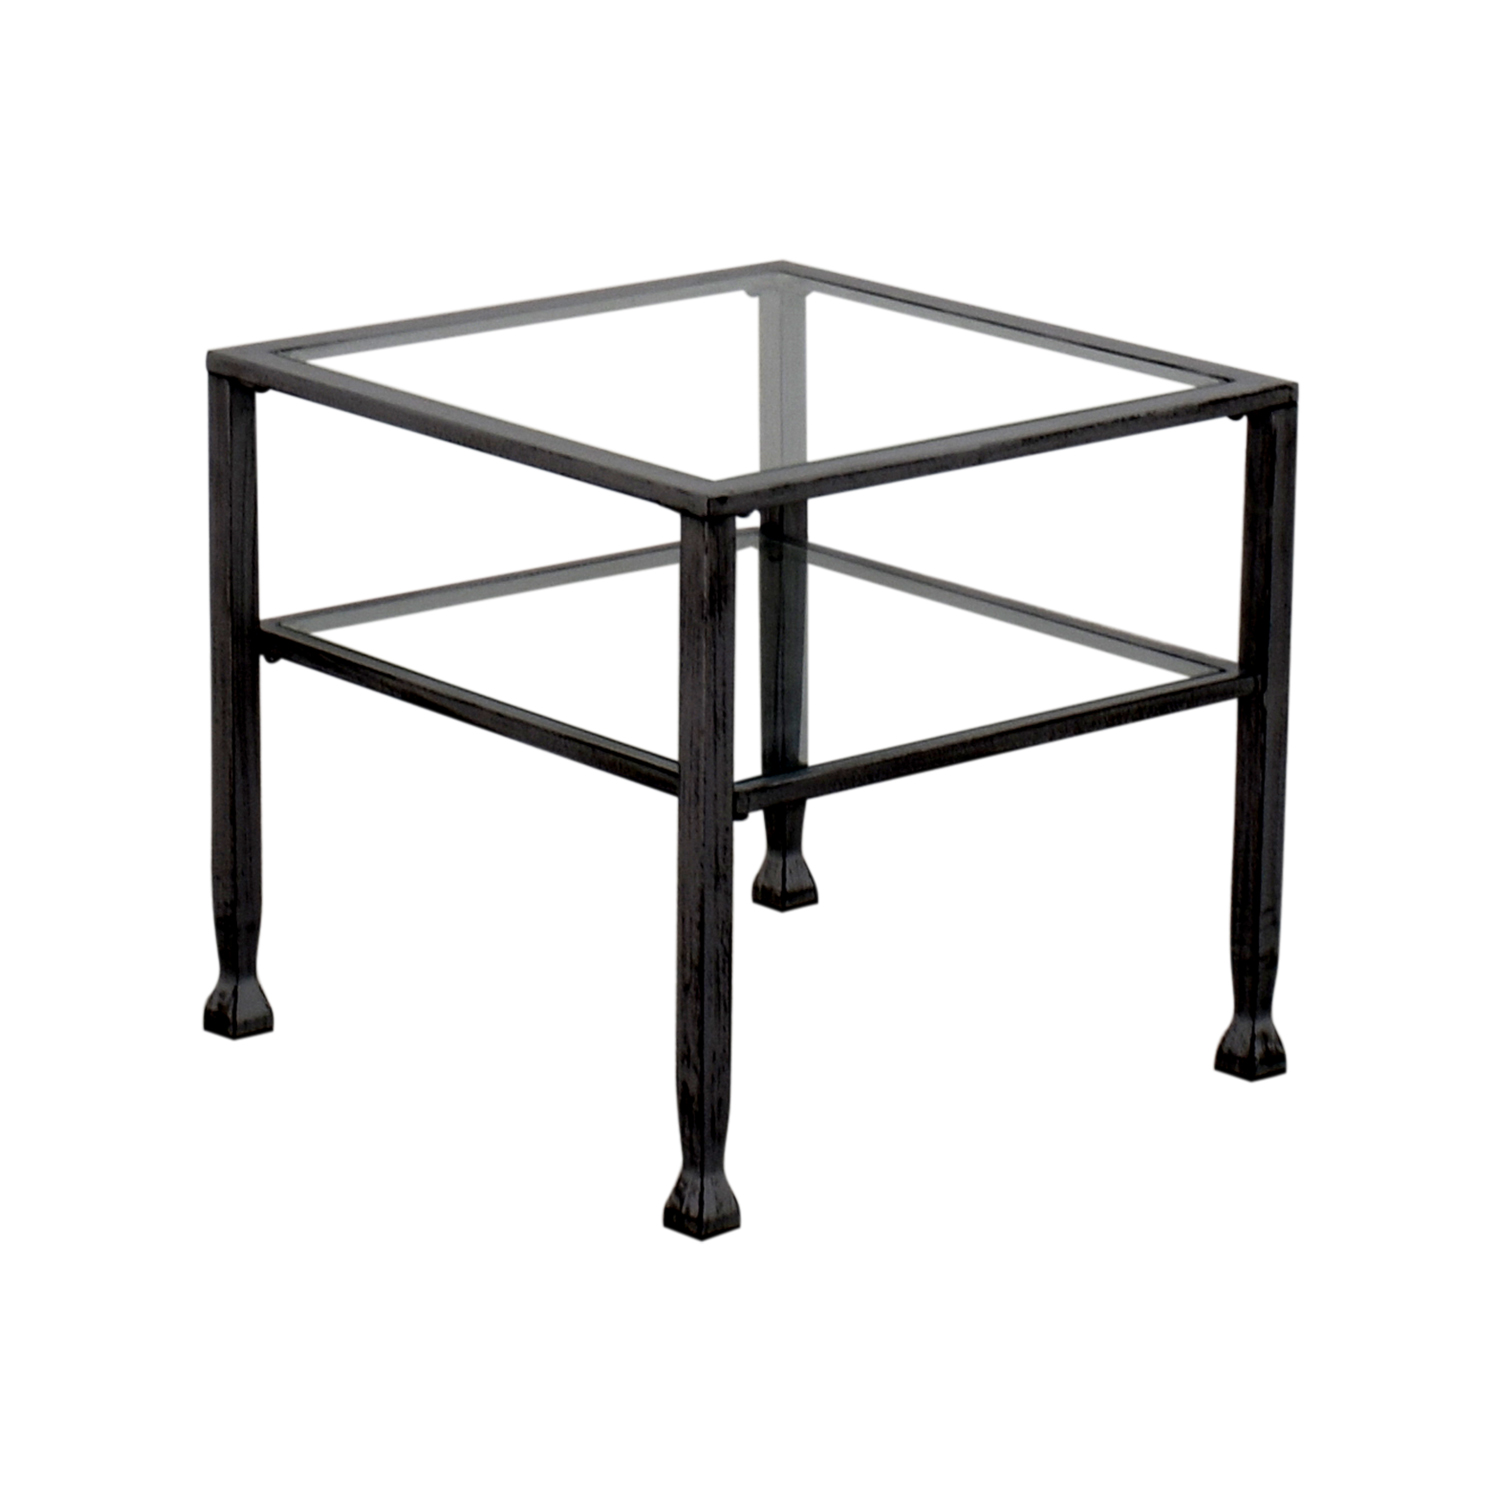 Glass And Steel Coffee Tables 86 Off Glass And Steel Coffee Table Tables